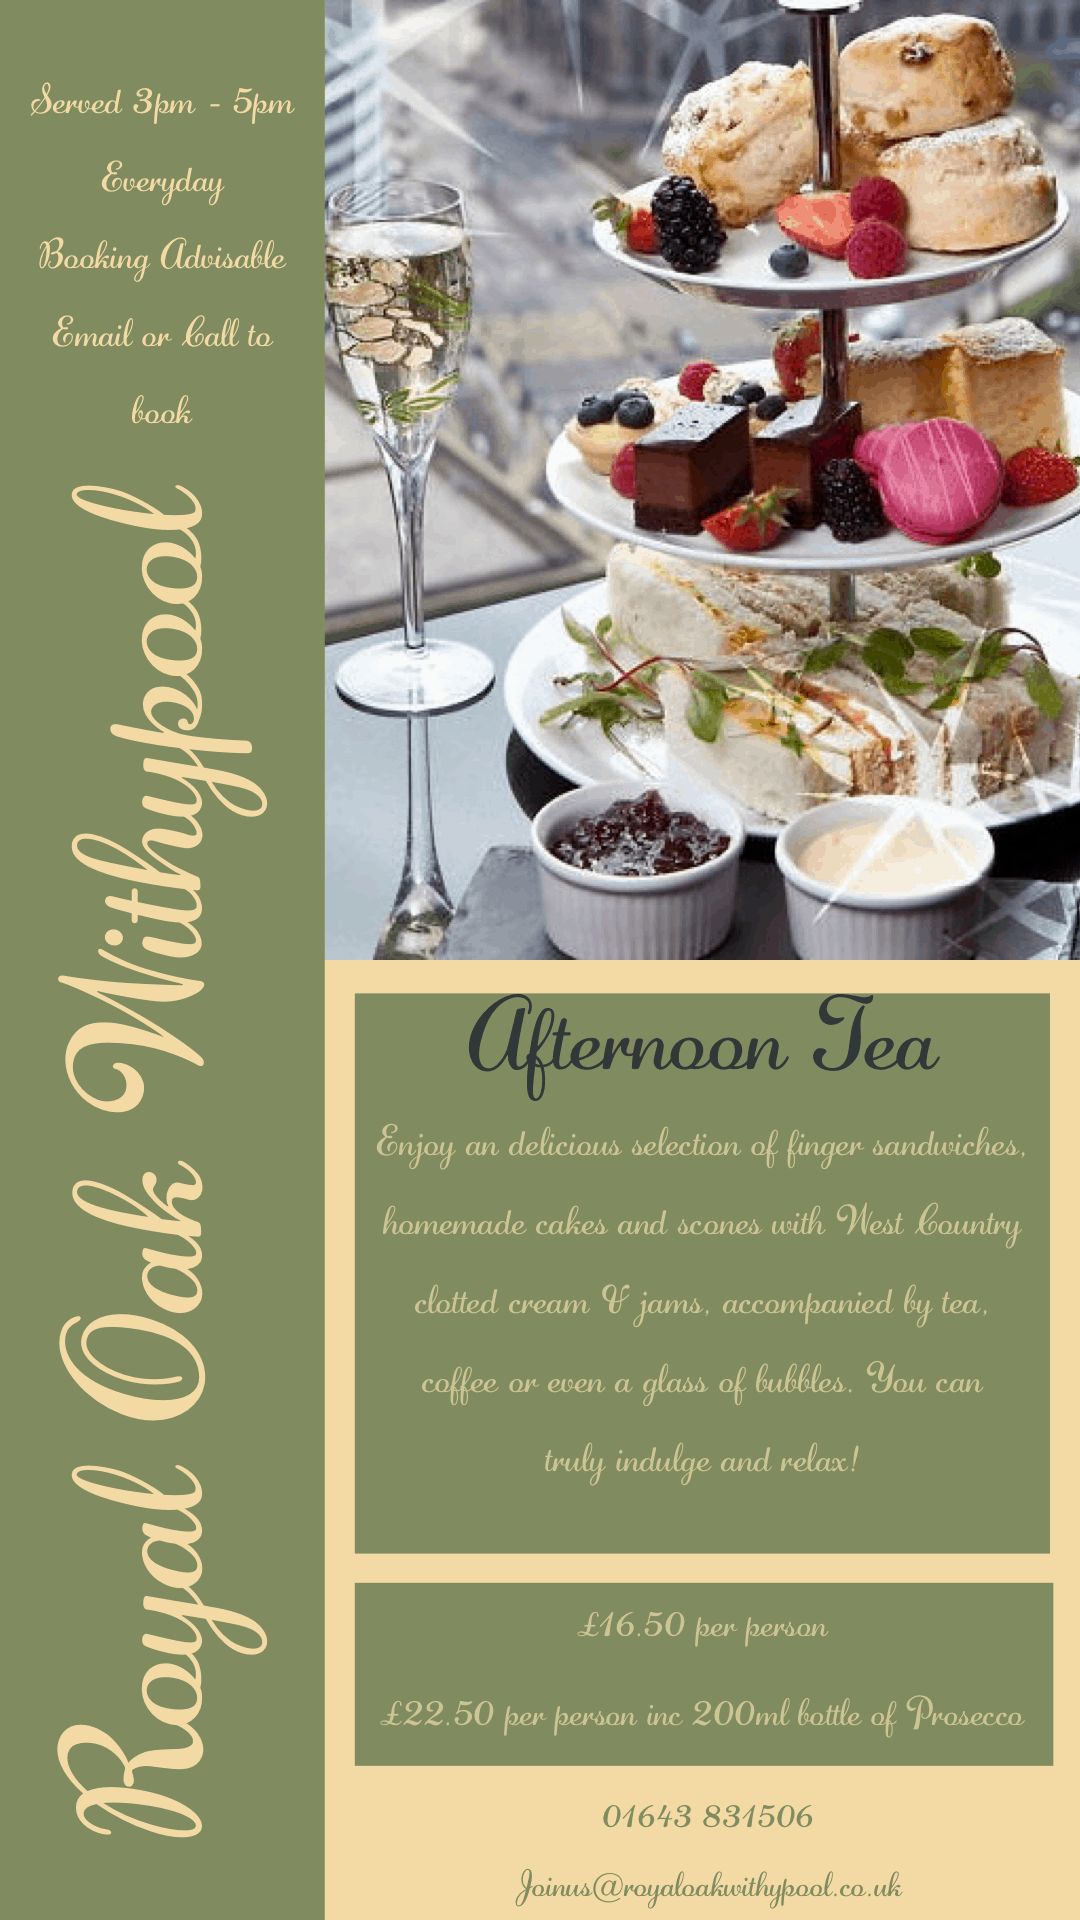 Afternoon Tea at The Royal Oak Withypool